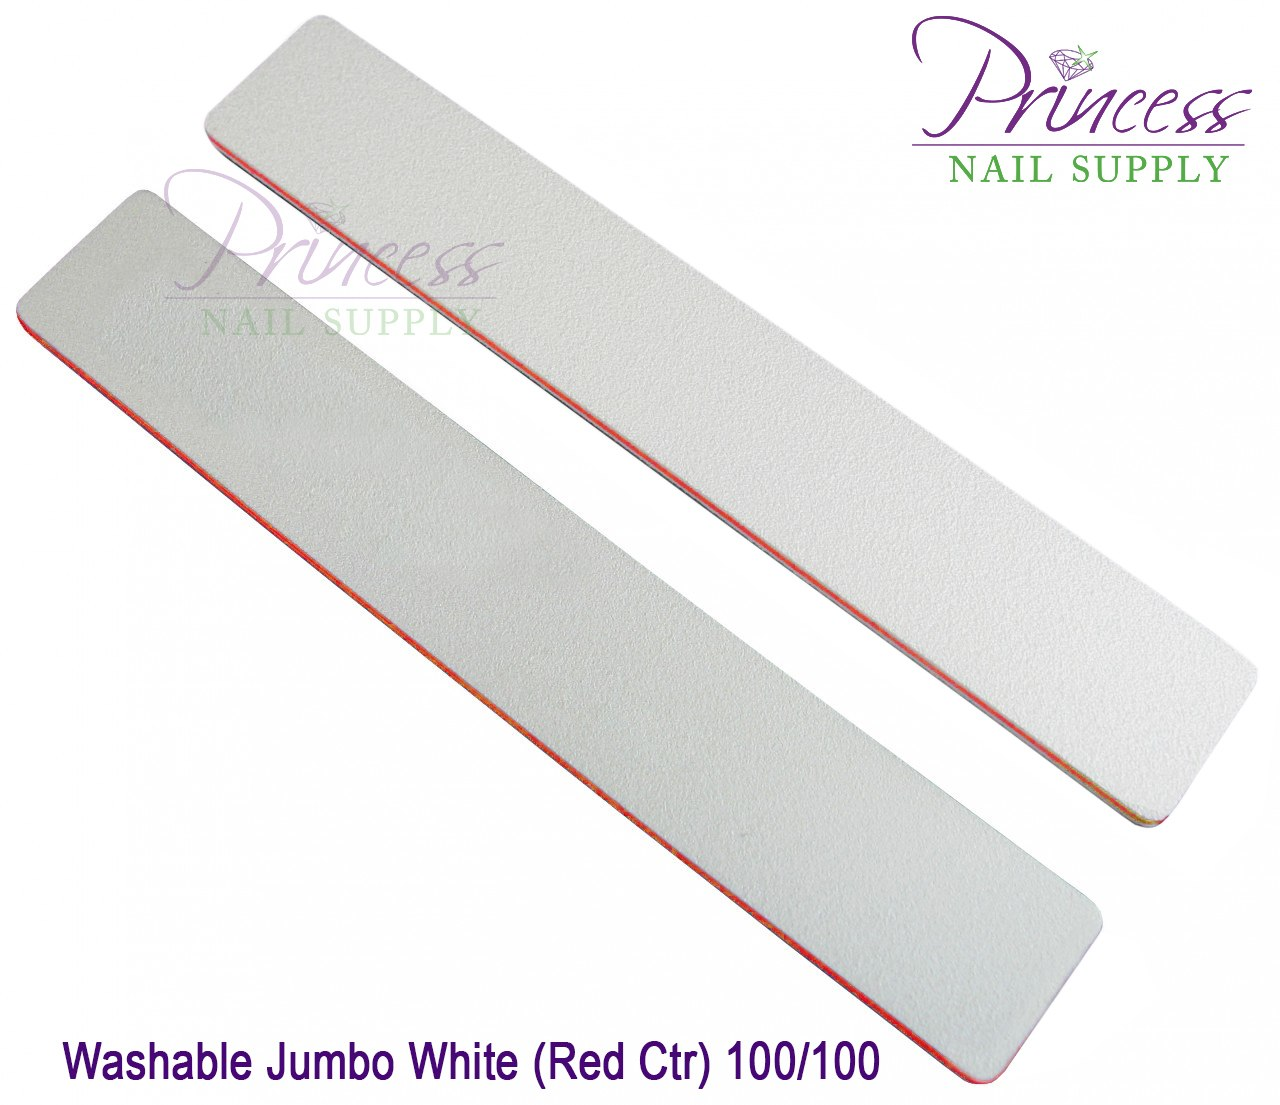 Princess Nail Files, 50 per pack - Washable Jumbo White/Red, Grit: #20105